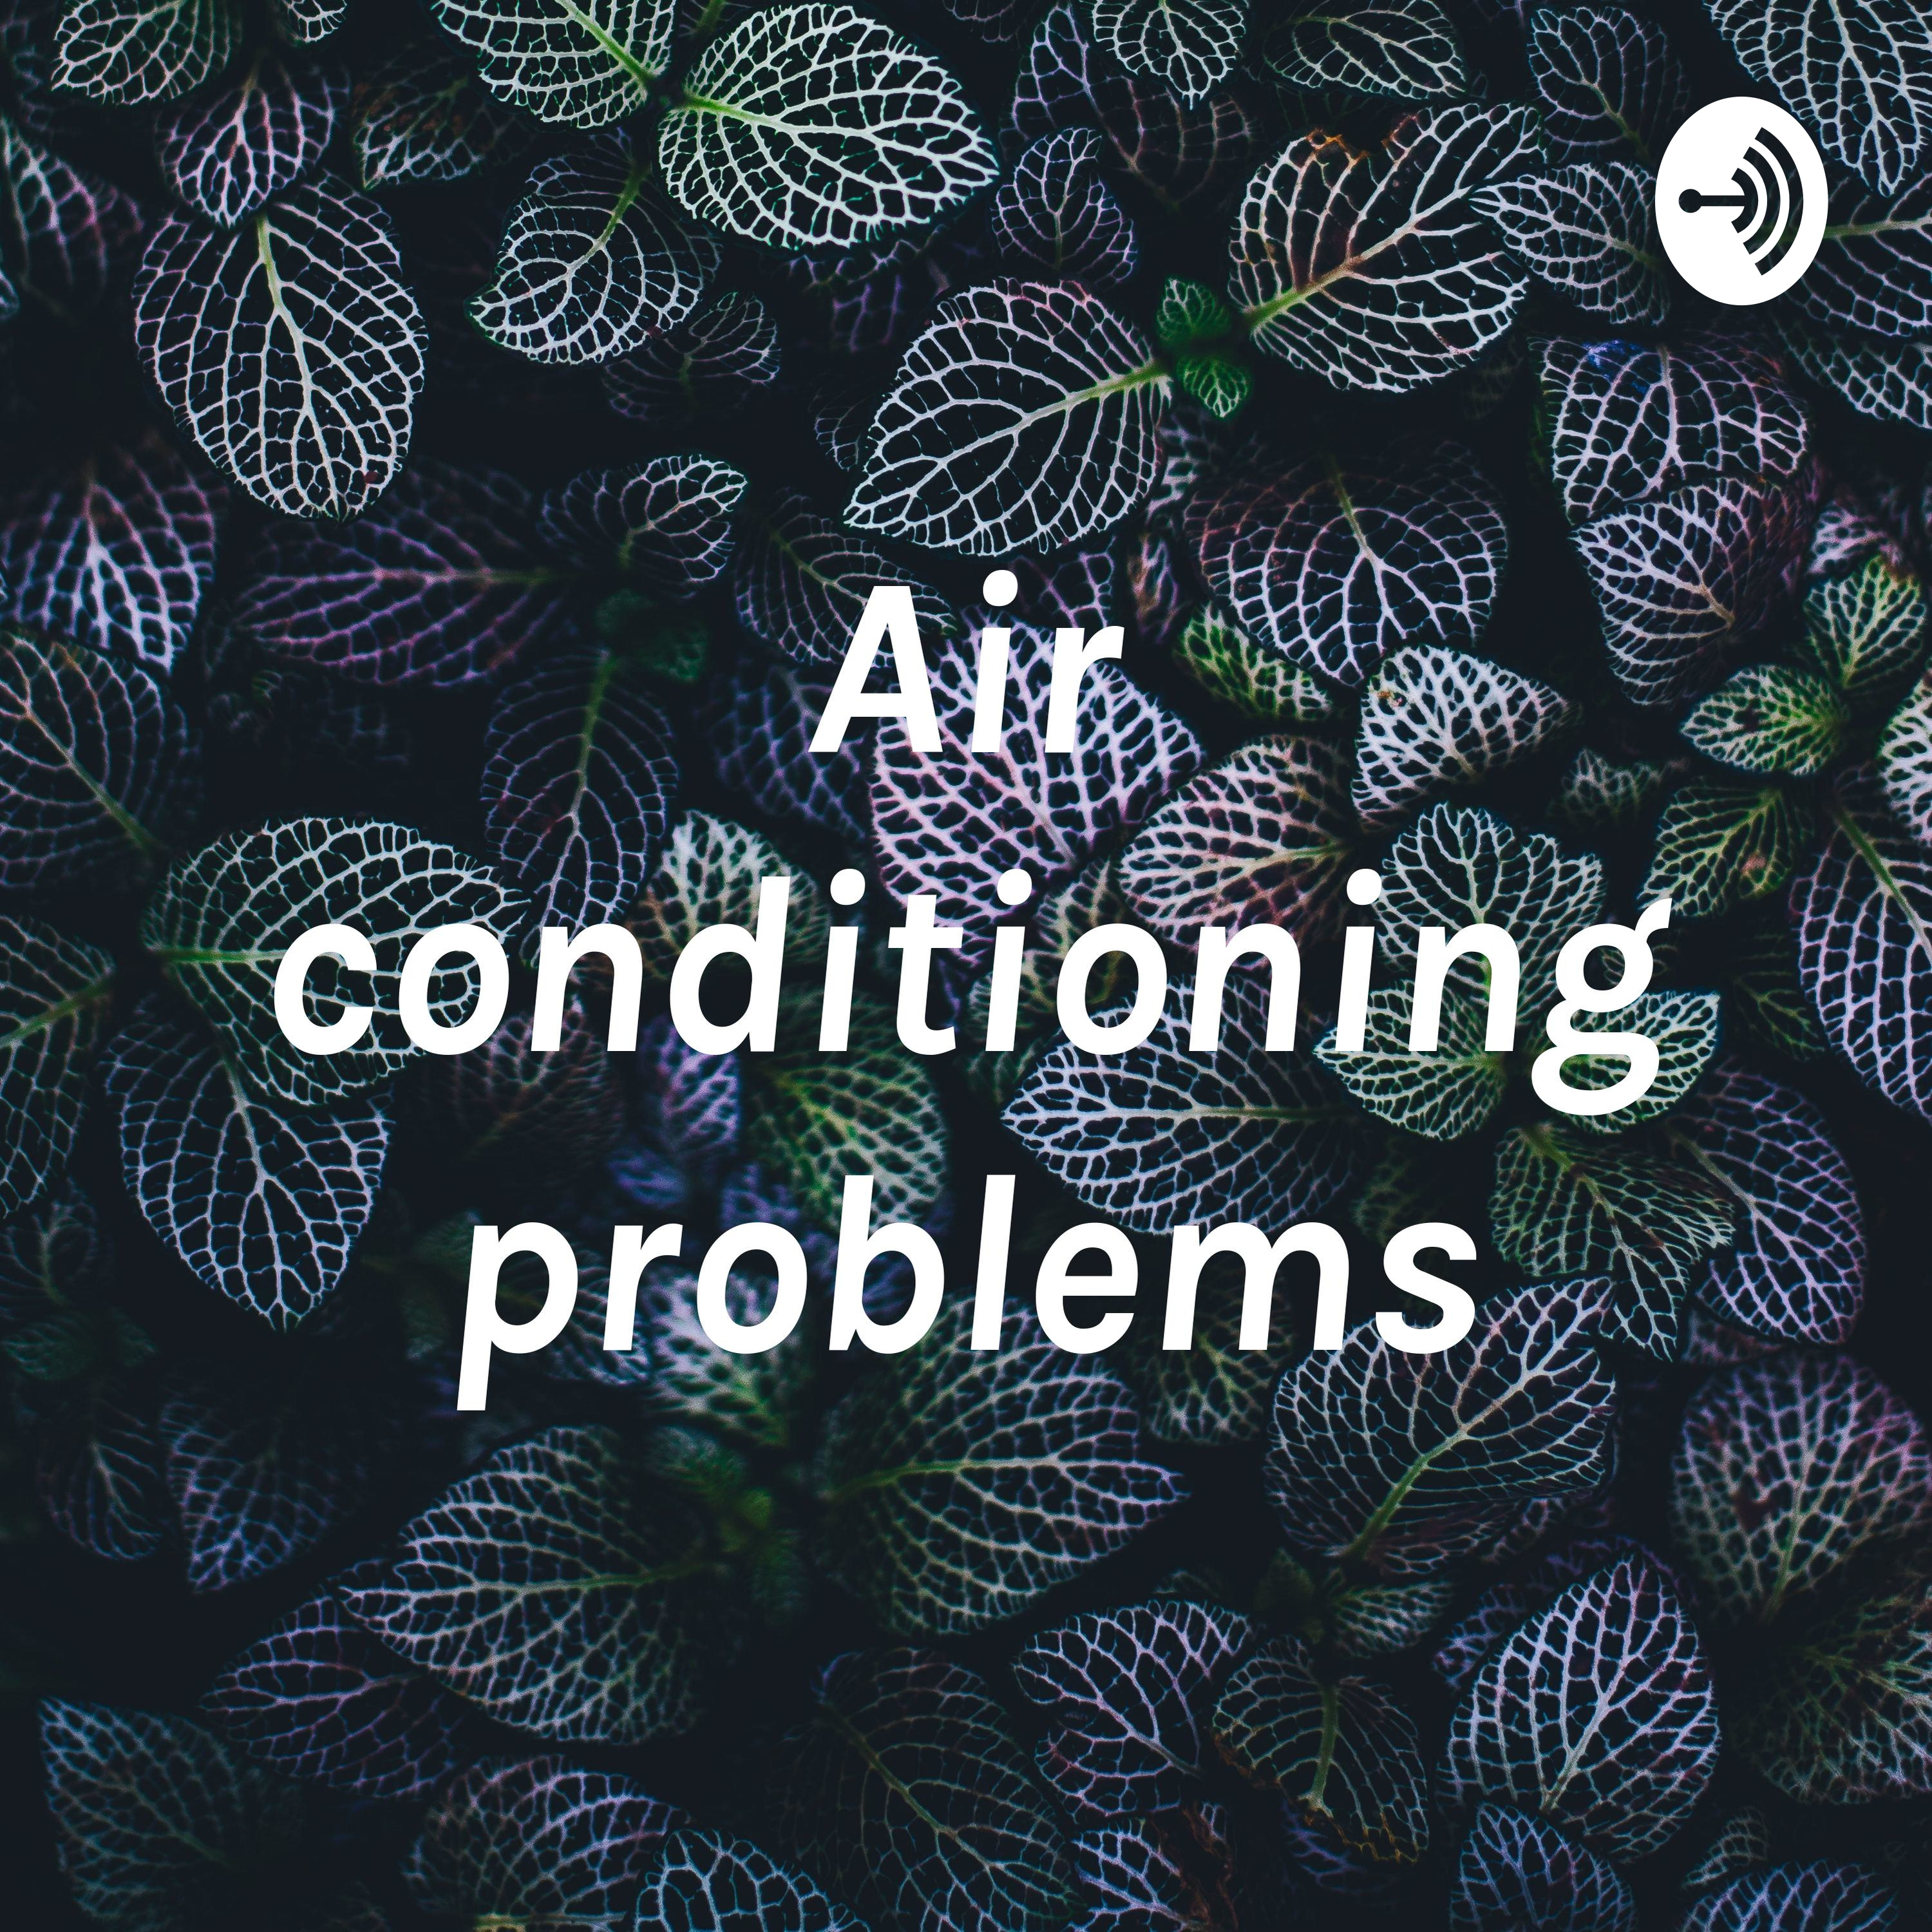 Air conditioning problems | Listen via Stitcher for Podcasts